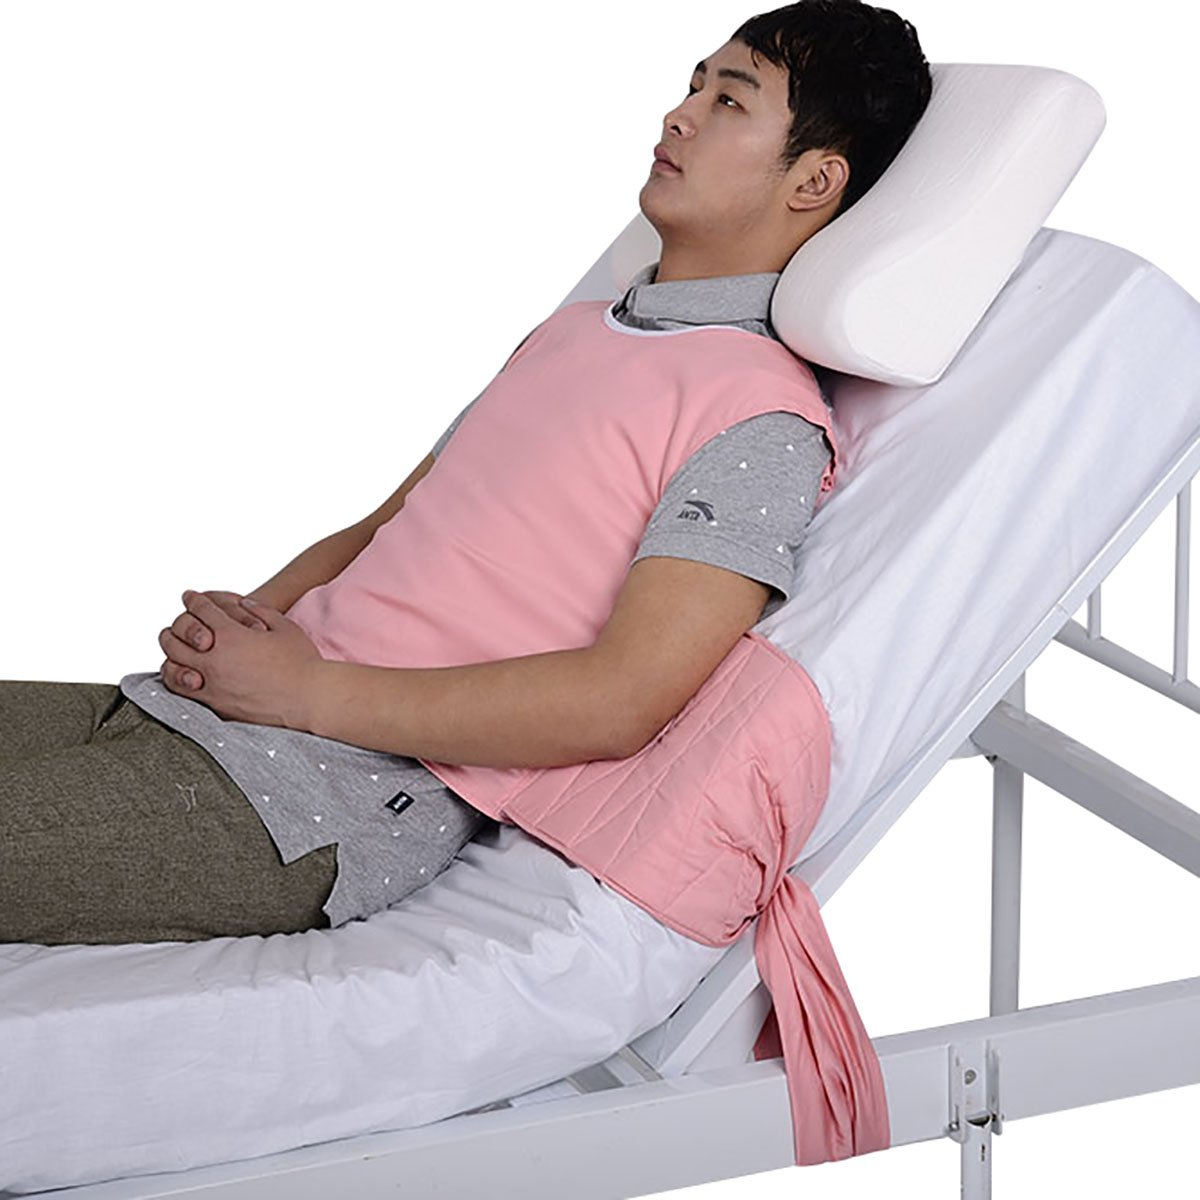 Posey Criss Cross Chest Vest Restraint for Use with Bed or Chair Manufacturer:ZH (S)